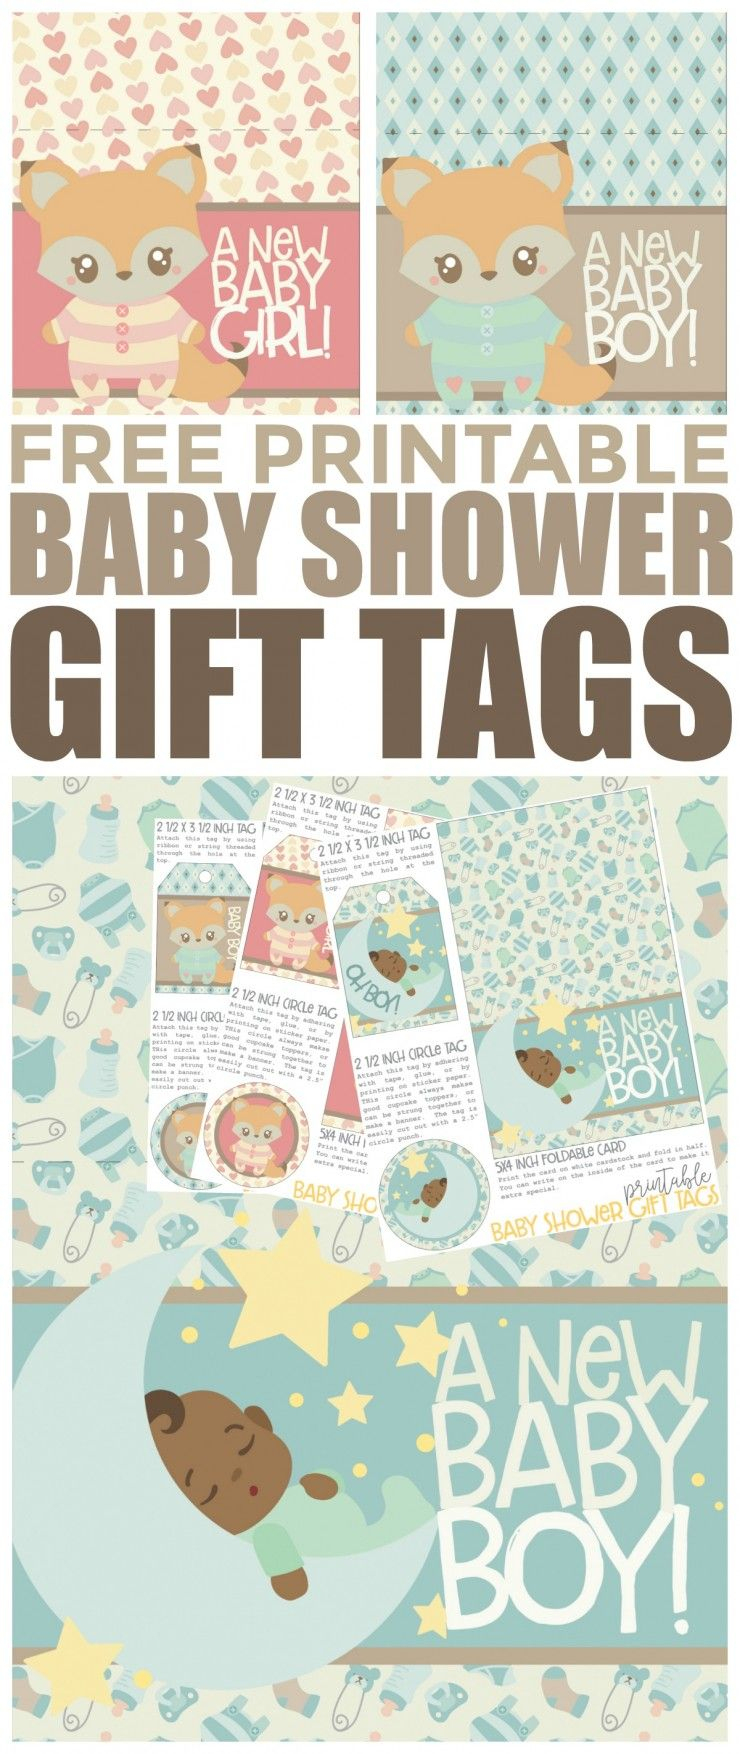 Free Printable Baby Shower Gift Tags   Free Printables   Pinterest - Free Printable Baby Shower Gift Tags